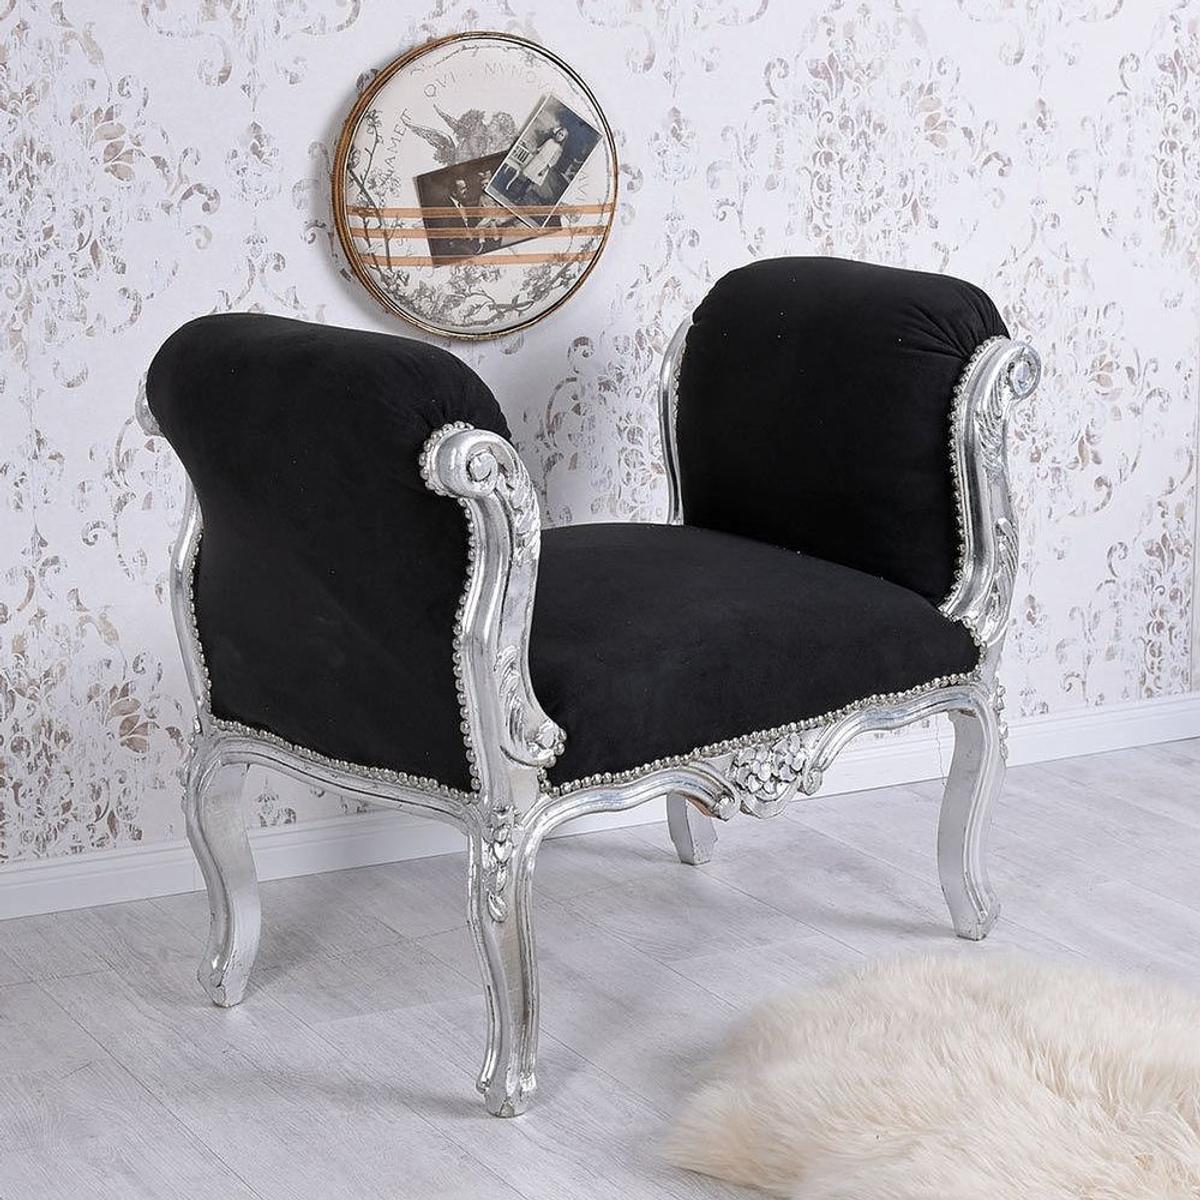 * GLAMOROUS LUXURY CHAISE LOUNGE FOR SALE *